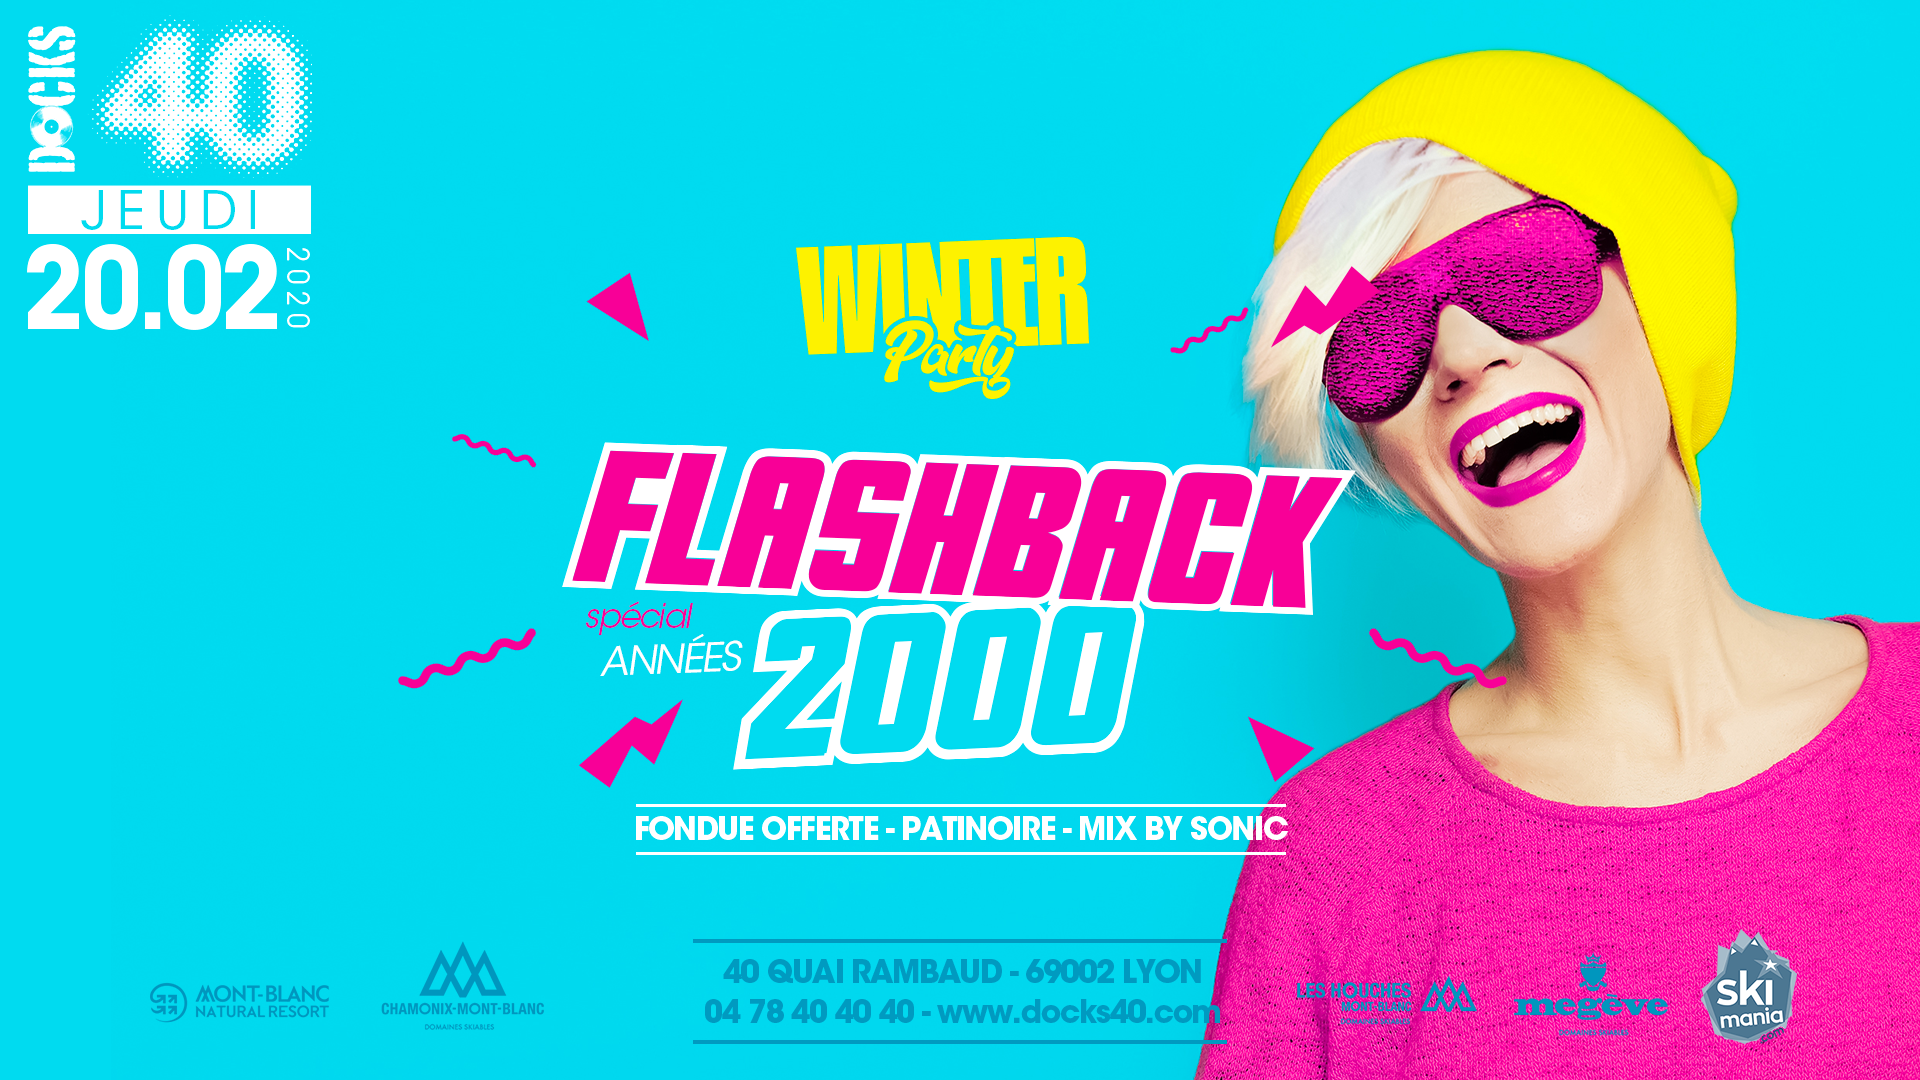 Winter Party - Flashback années 2000